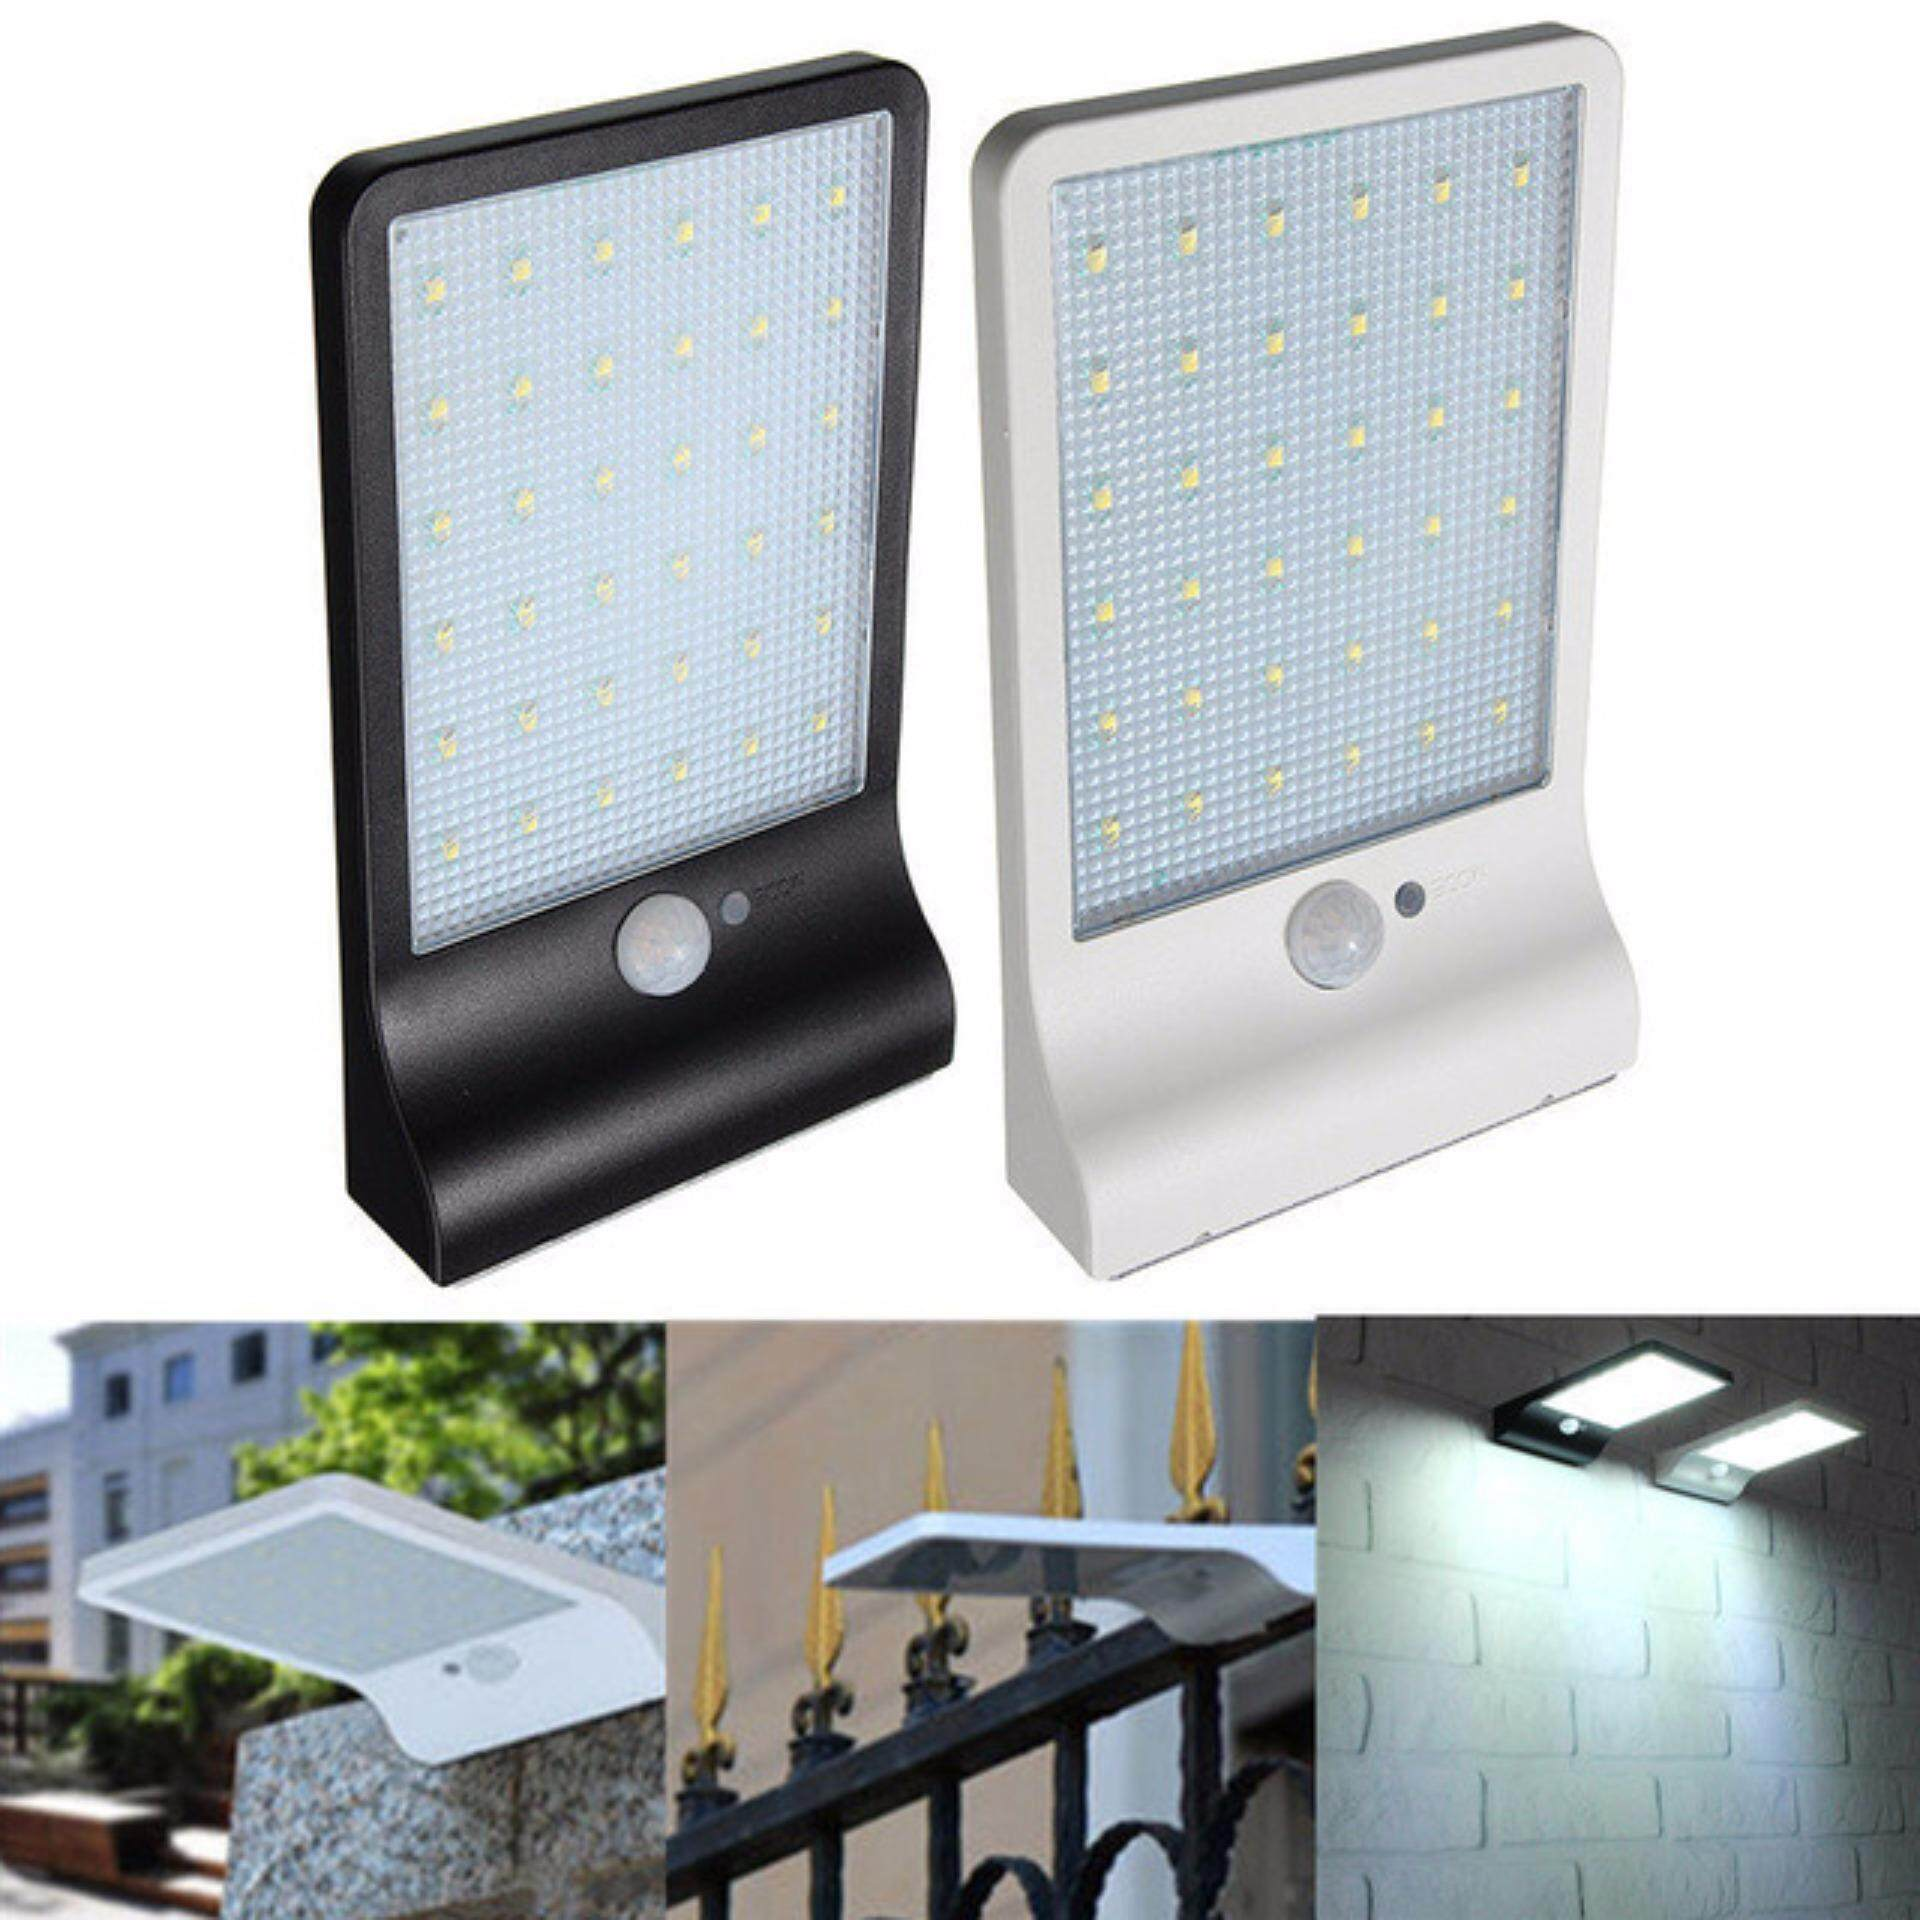 Buy Sell Cheapest Newest 450lm 36 Best Quality Product Deals Cheap Led Solar Powered Integration Street Light Full Hot Power Pir Motion Sensor Lamps Garden Security